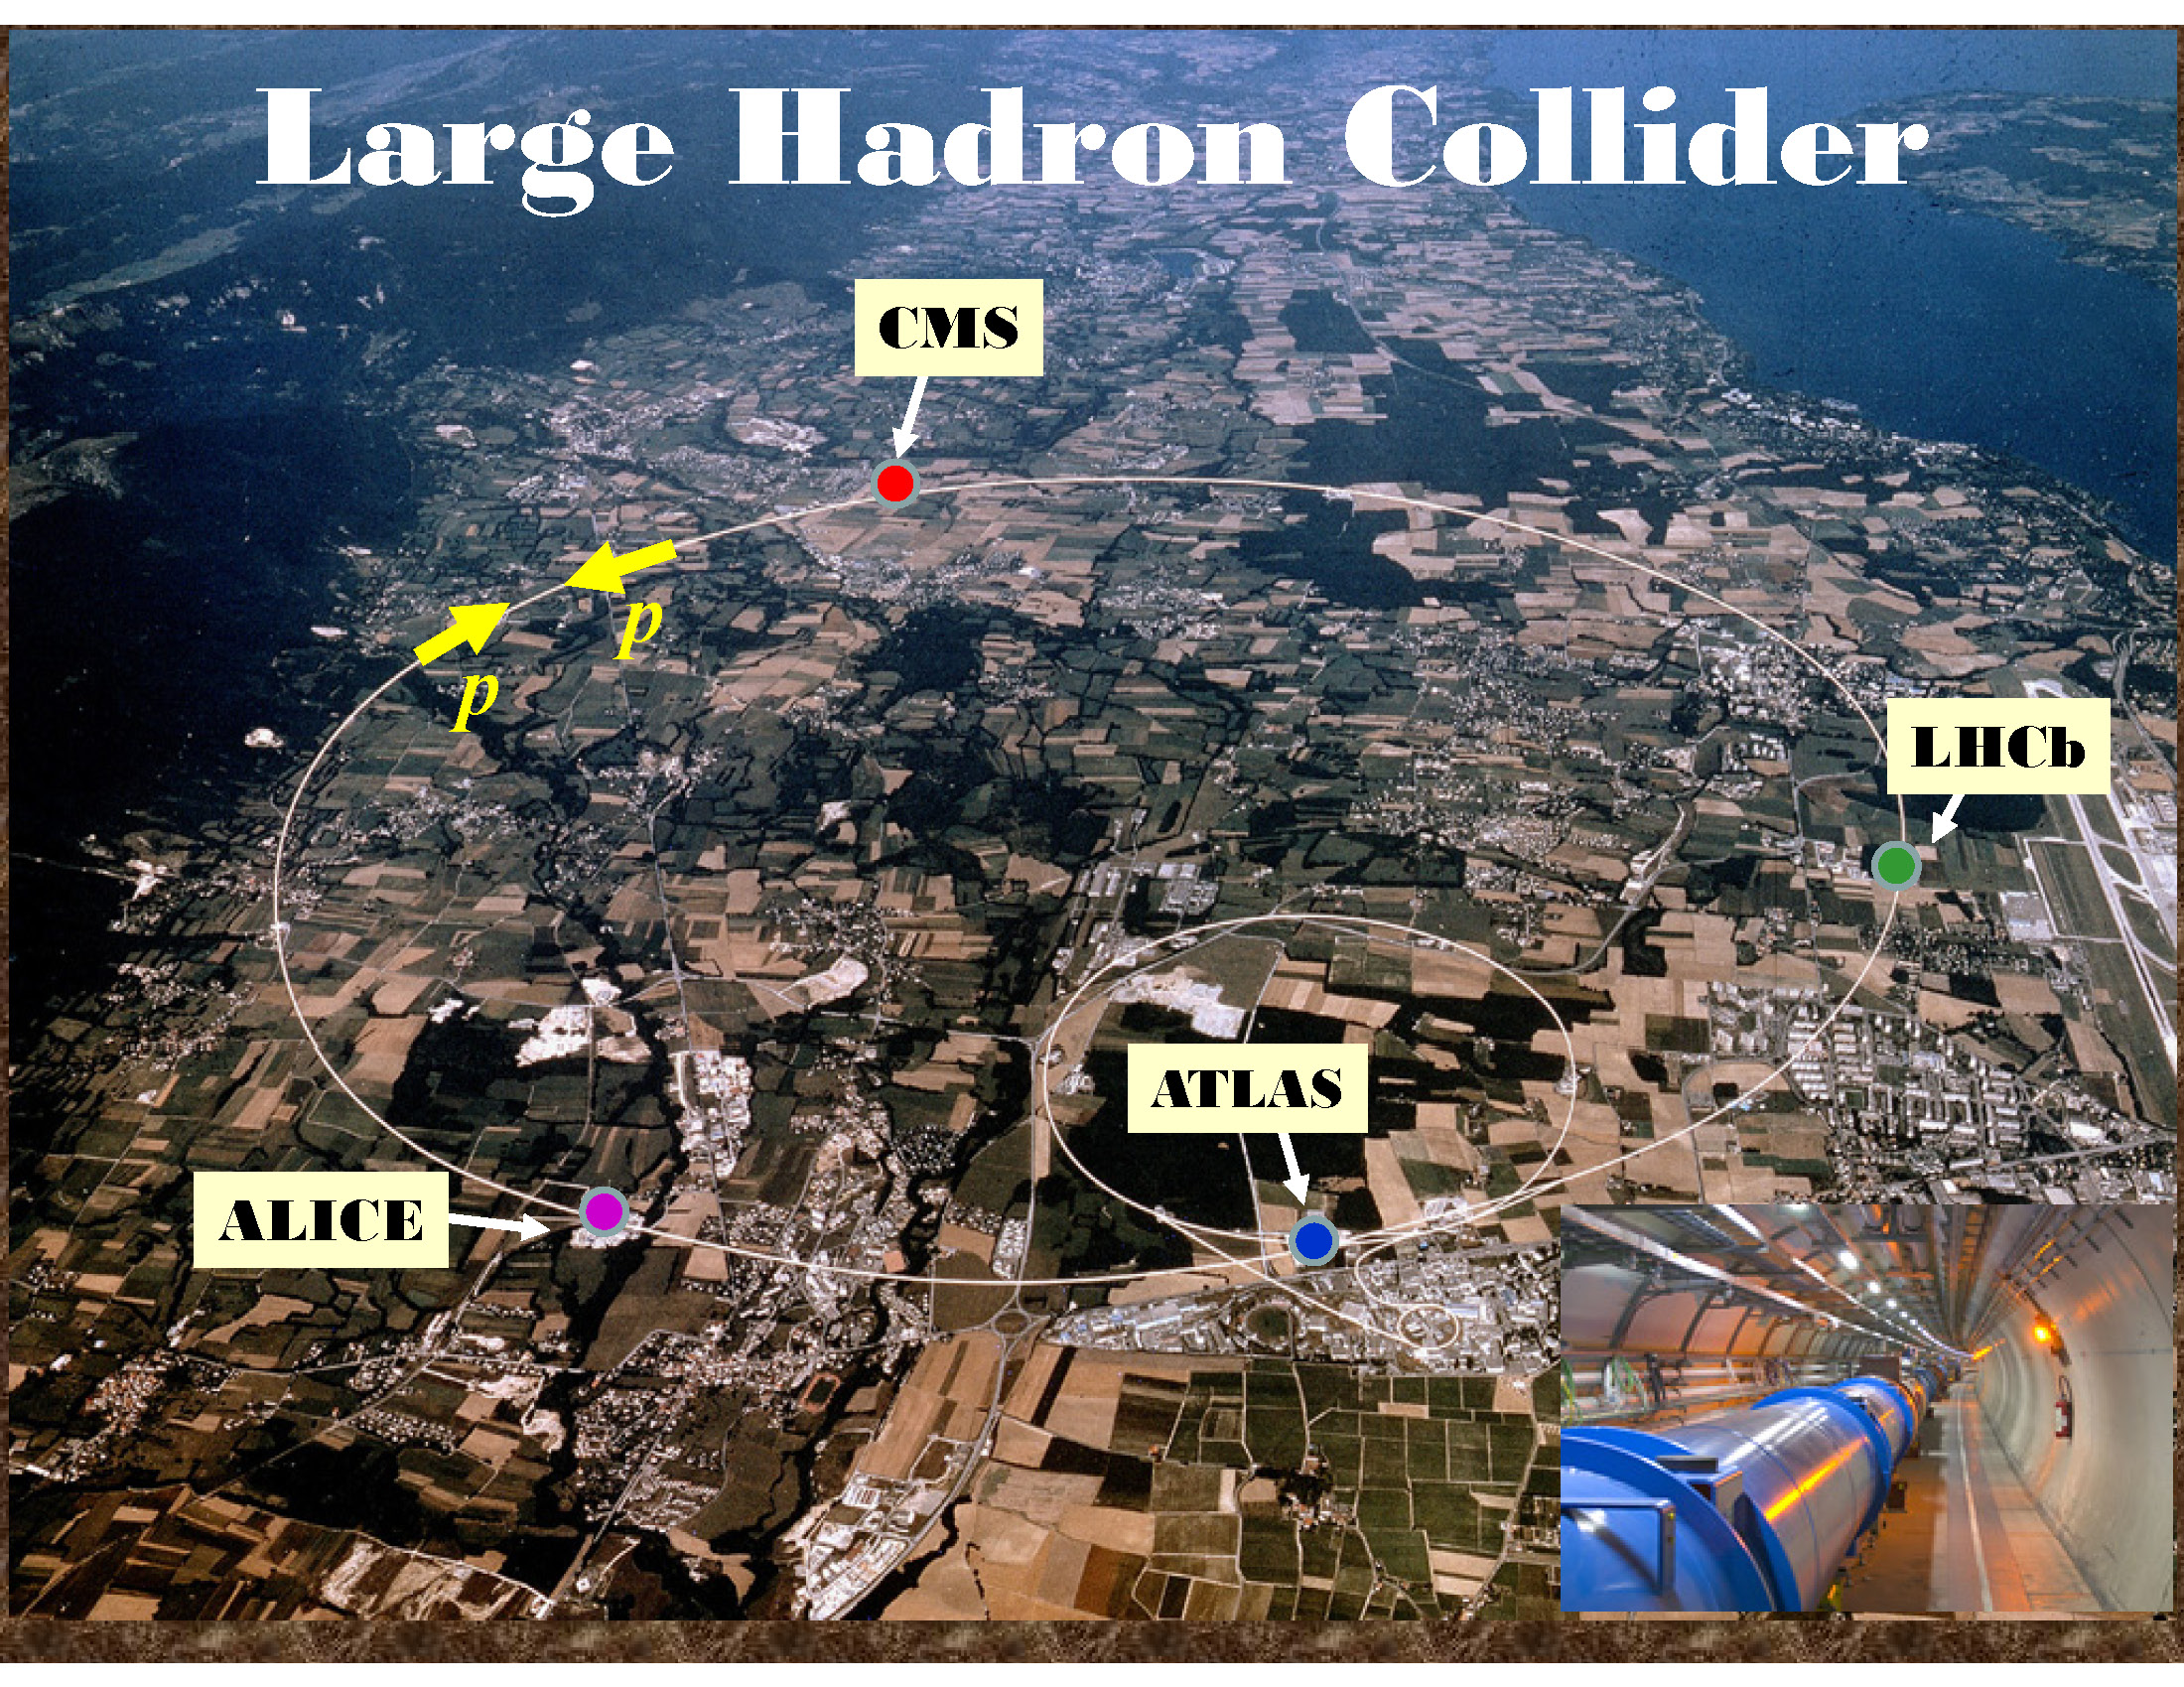 large hadron collider research paper The large hadron collider was designed to collide protons with energies of seven trillion electron volts apiece, taking science back to the first trillionth of a second after the big bang.